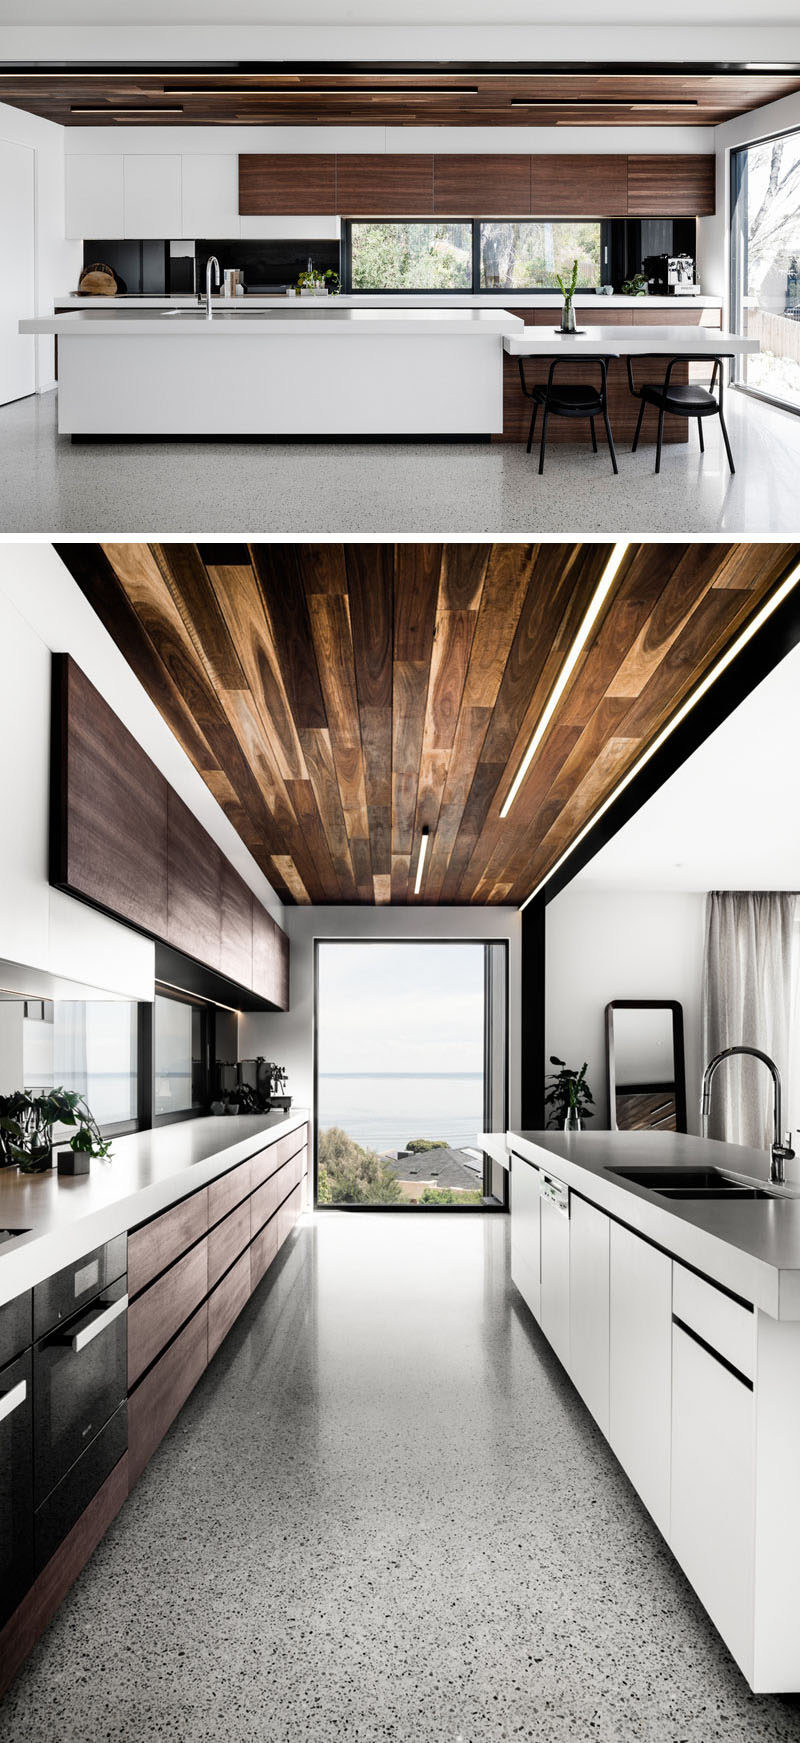 In this modern kitchen, the wood ceiling and wood cabinetry contrasts the bright white minimalist cabinets and kitchen island. A large window at the end of the kitchen has been positioned to take advantage of the sunset views. #KitchenDesign #ModernKitchen #WhiteAndWood